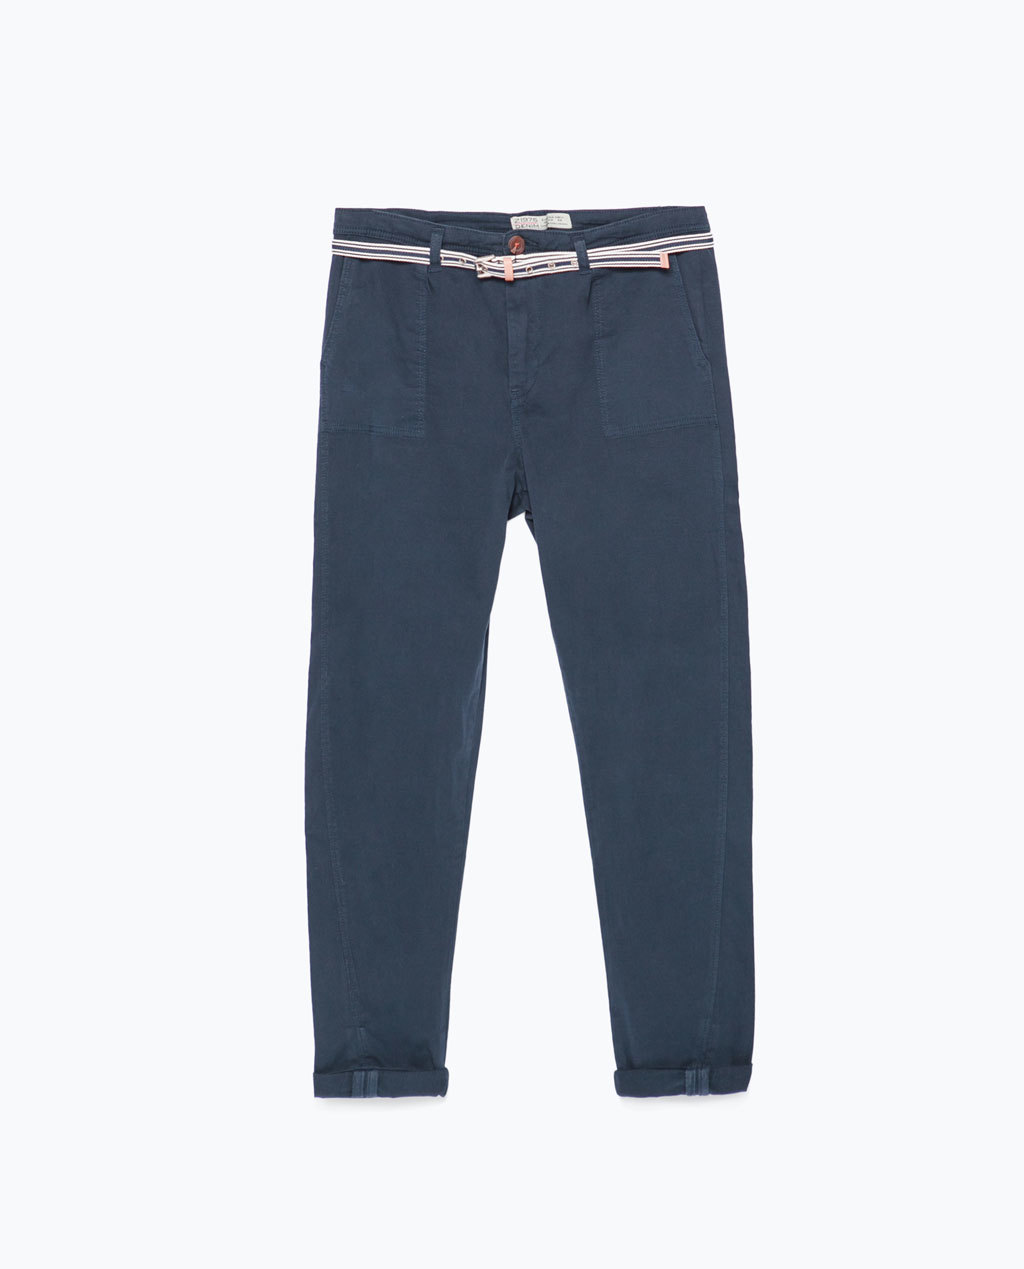 Topstitched Chinos - length: standard; pattern: plain; pocket detail: small back pockets, pockets at the sides; waist: mid/regular rise; predominant colour: navy; occasions: casual; style: chino; fibres: cotton - stretch; texture group: cotton feel fabrics; fit: slim leg; pattern type: fabric; season: s/s 2015; wardrobe: basic